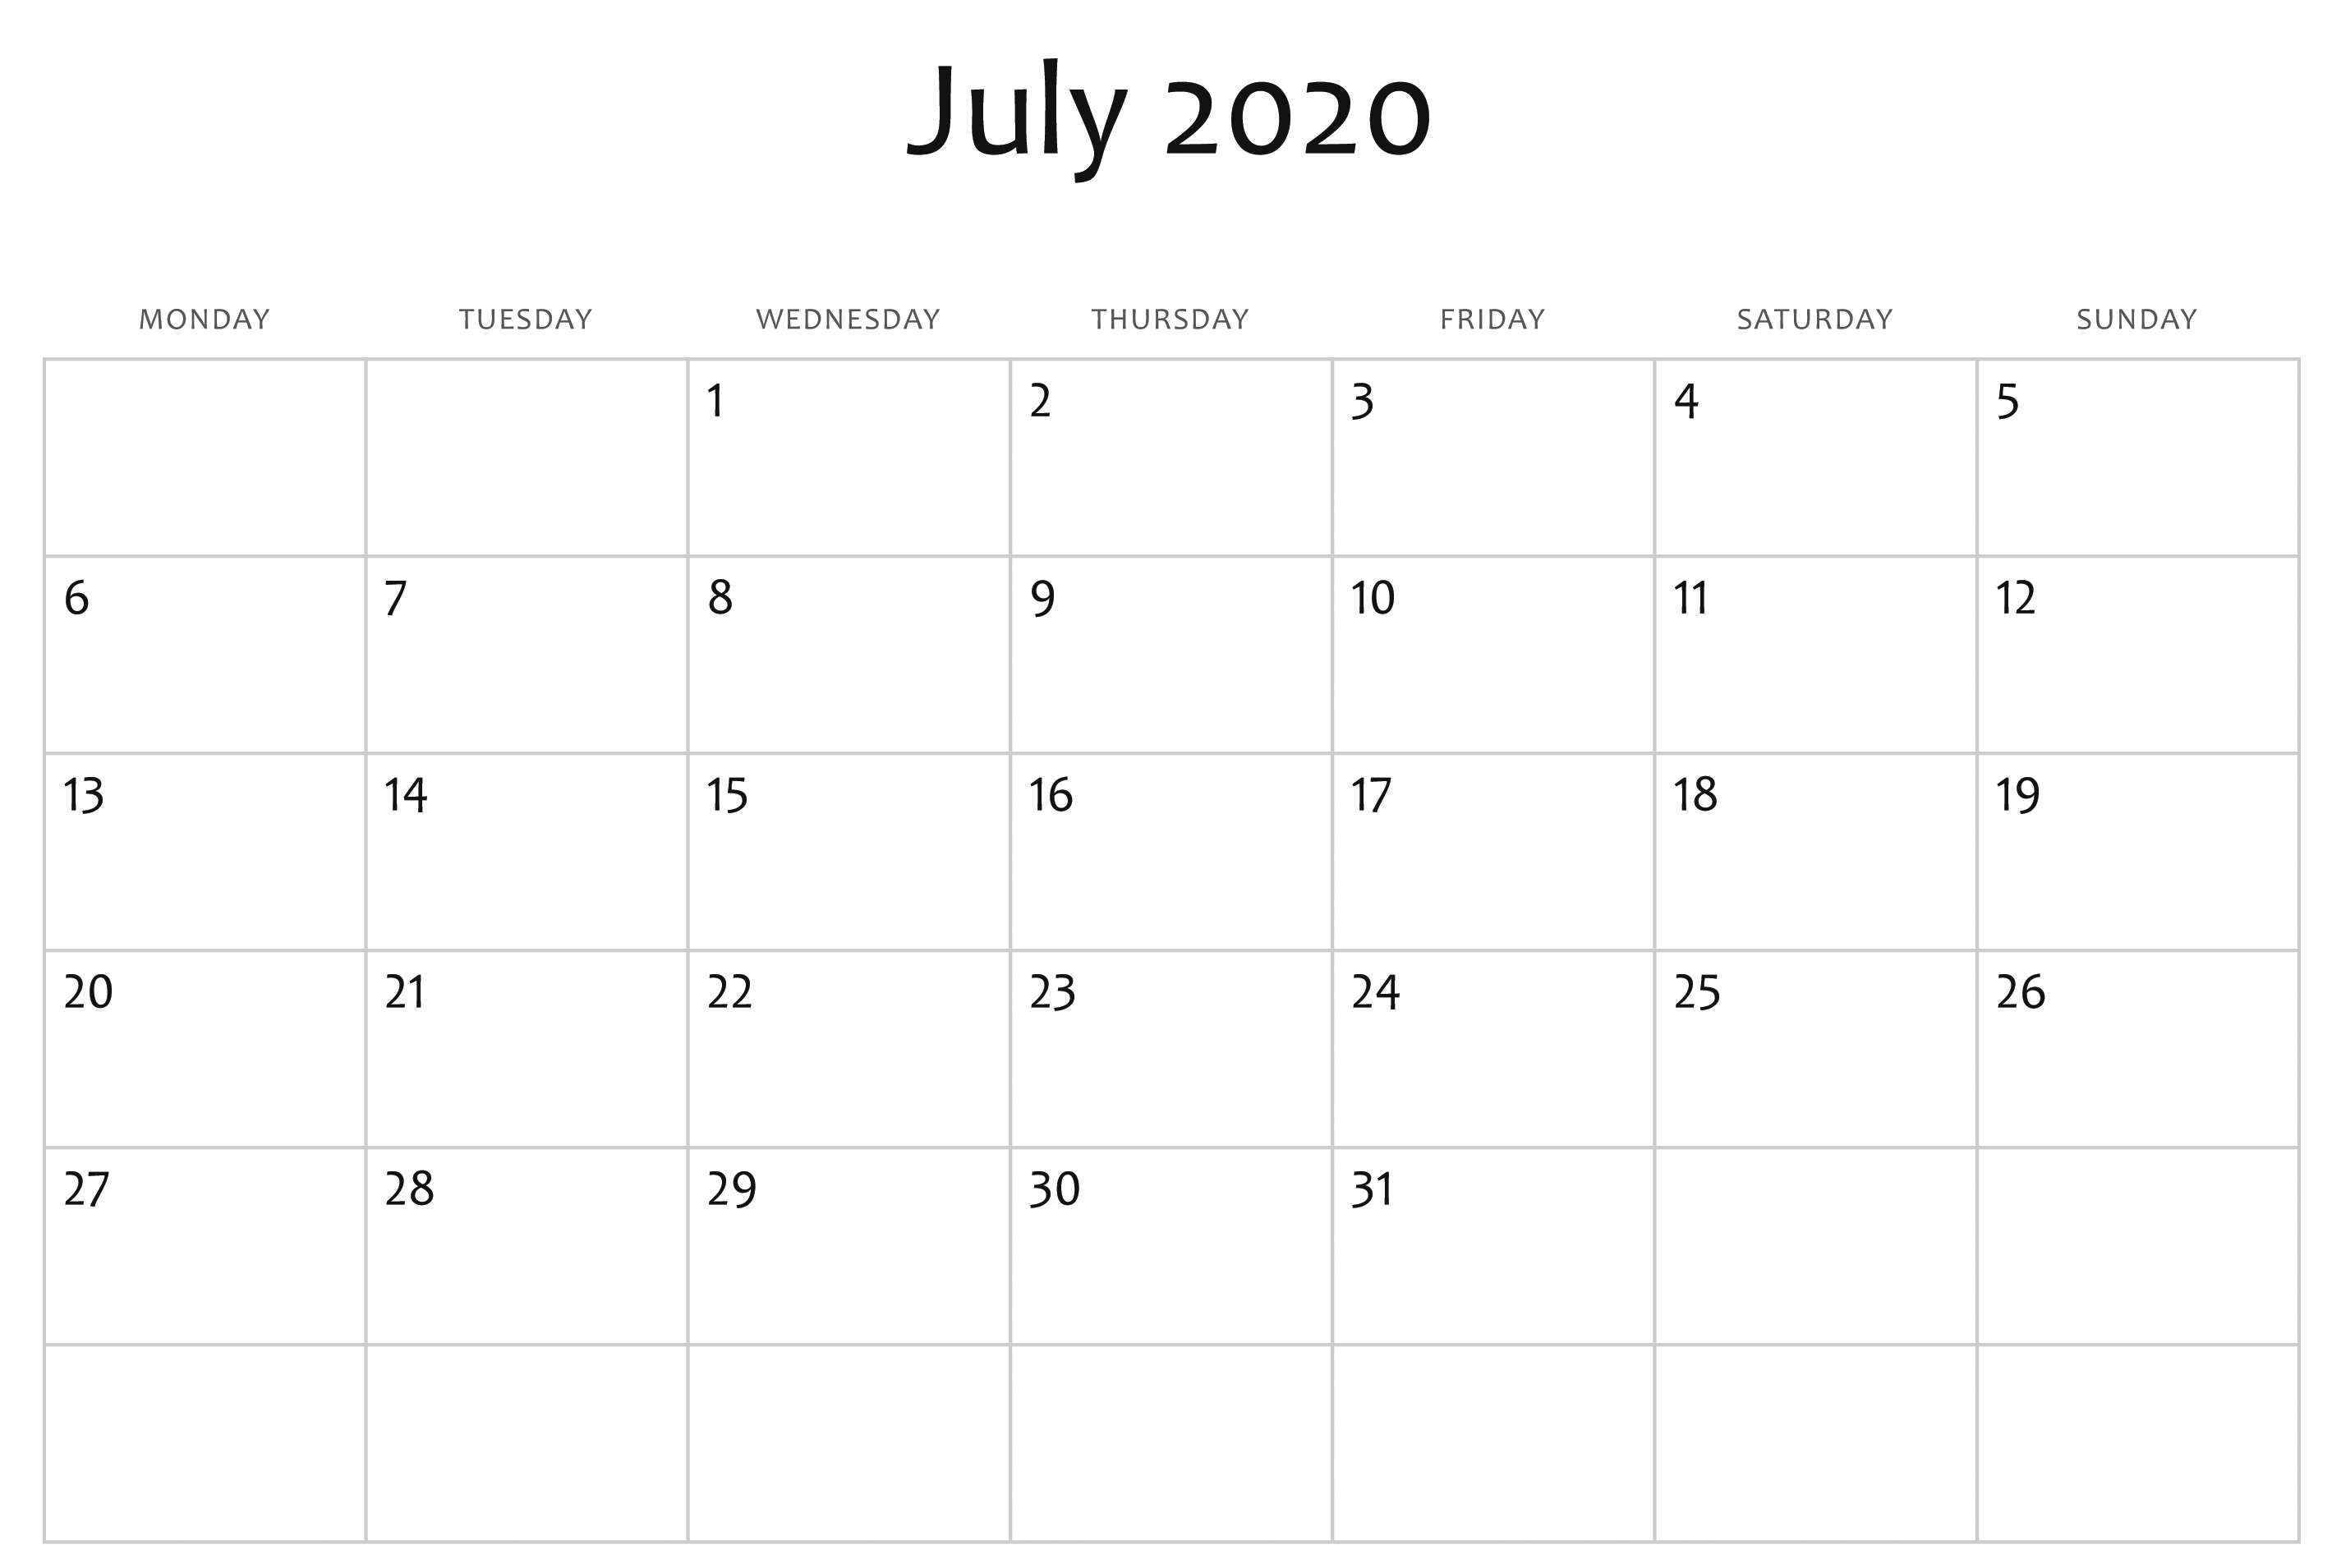 Awesome July 2020 Calendar PDF, Word, Excel Template